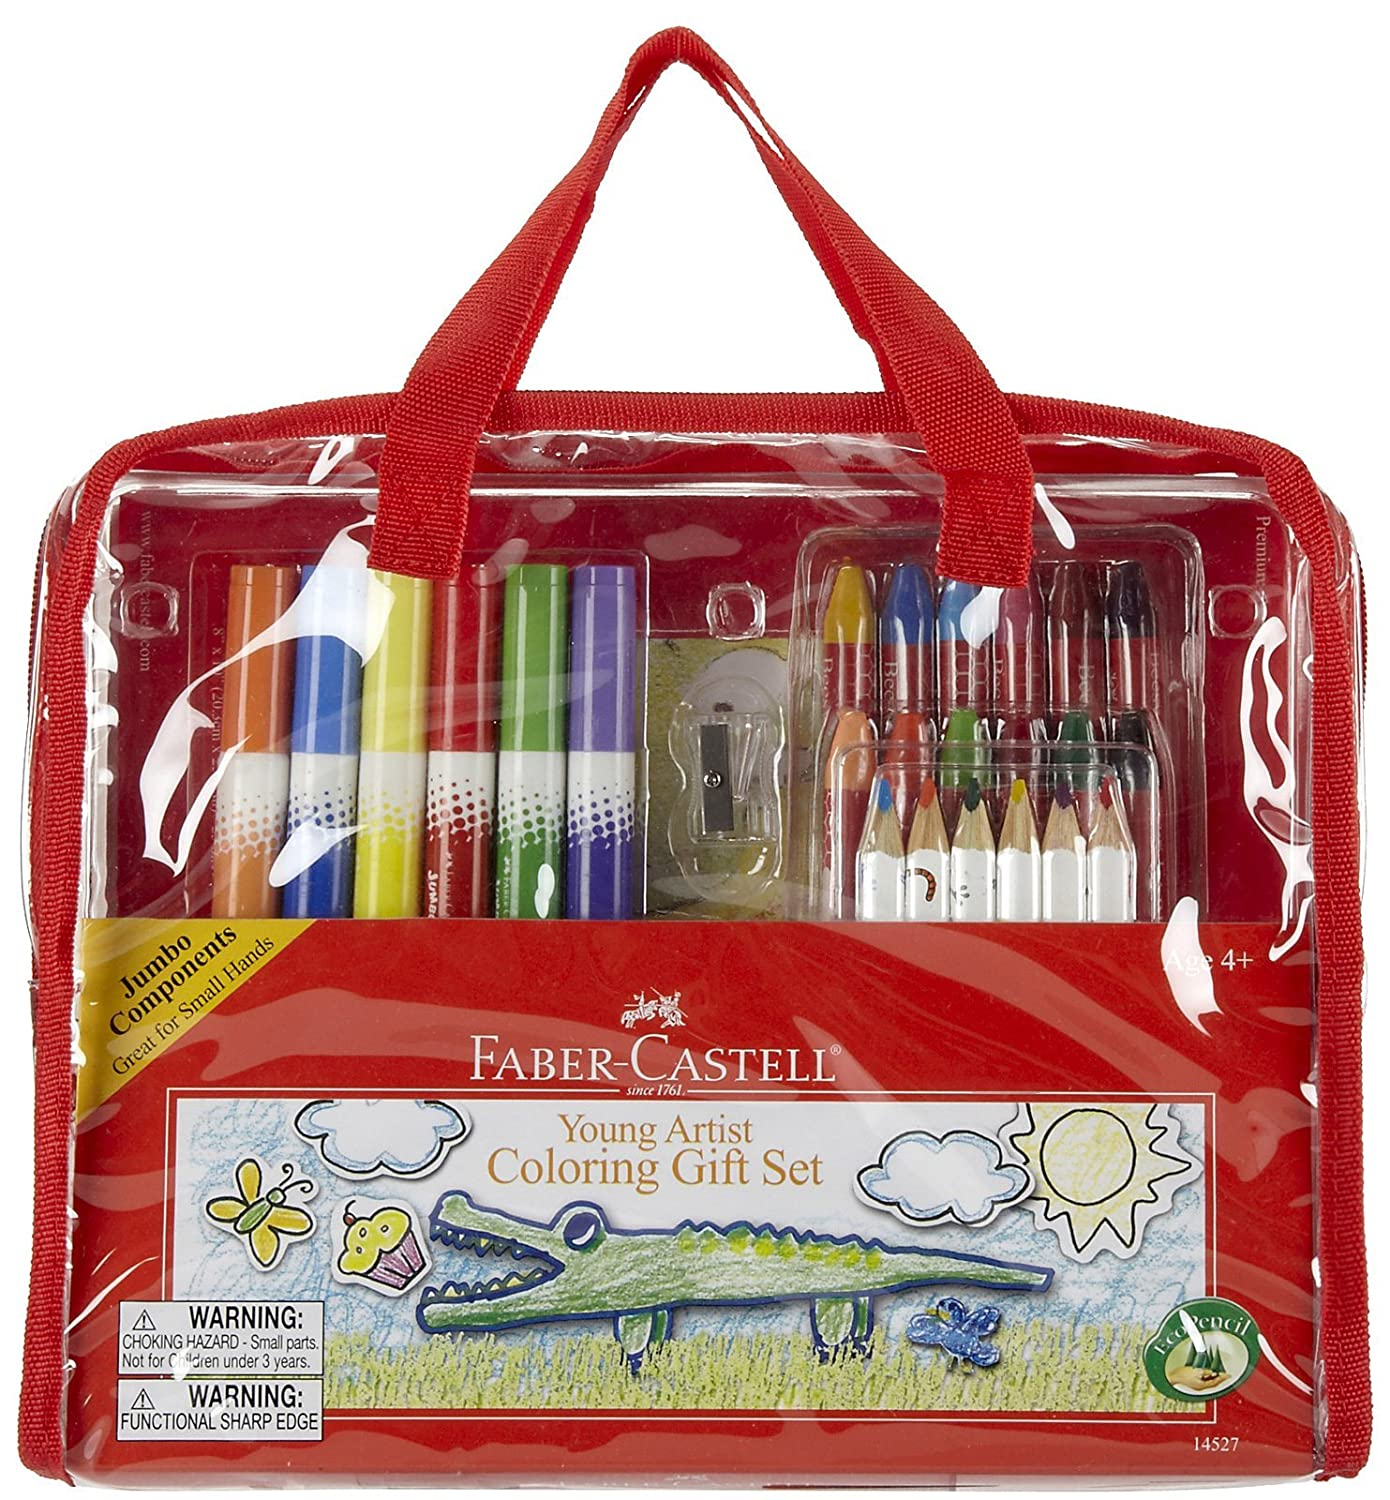 Young Artist Coloring Gift Set by Faber Castell